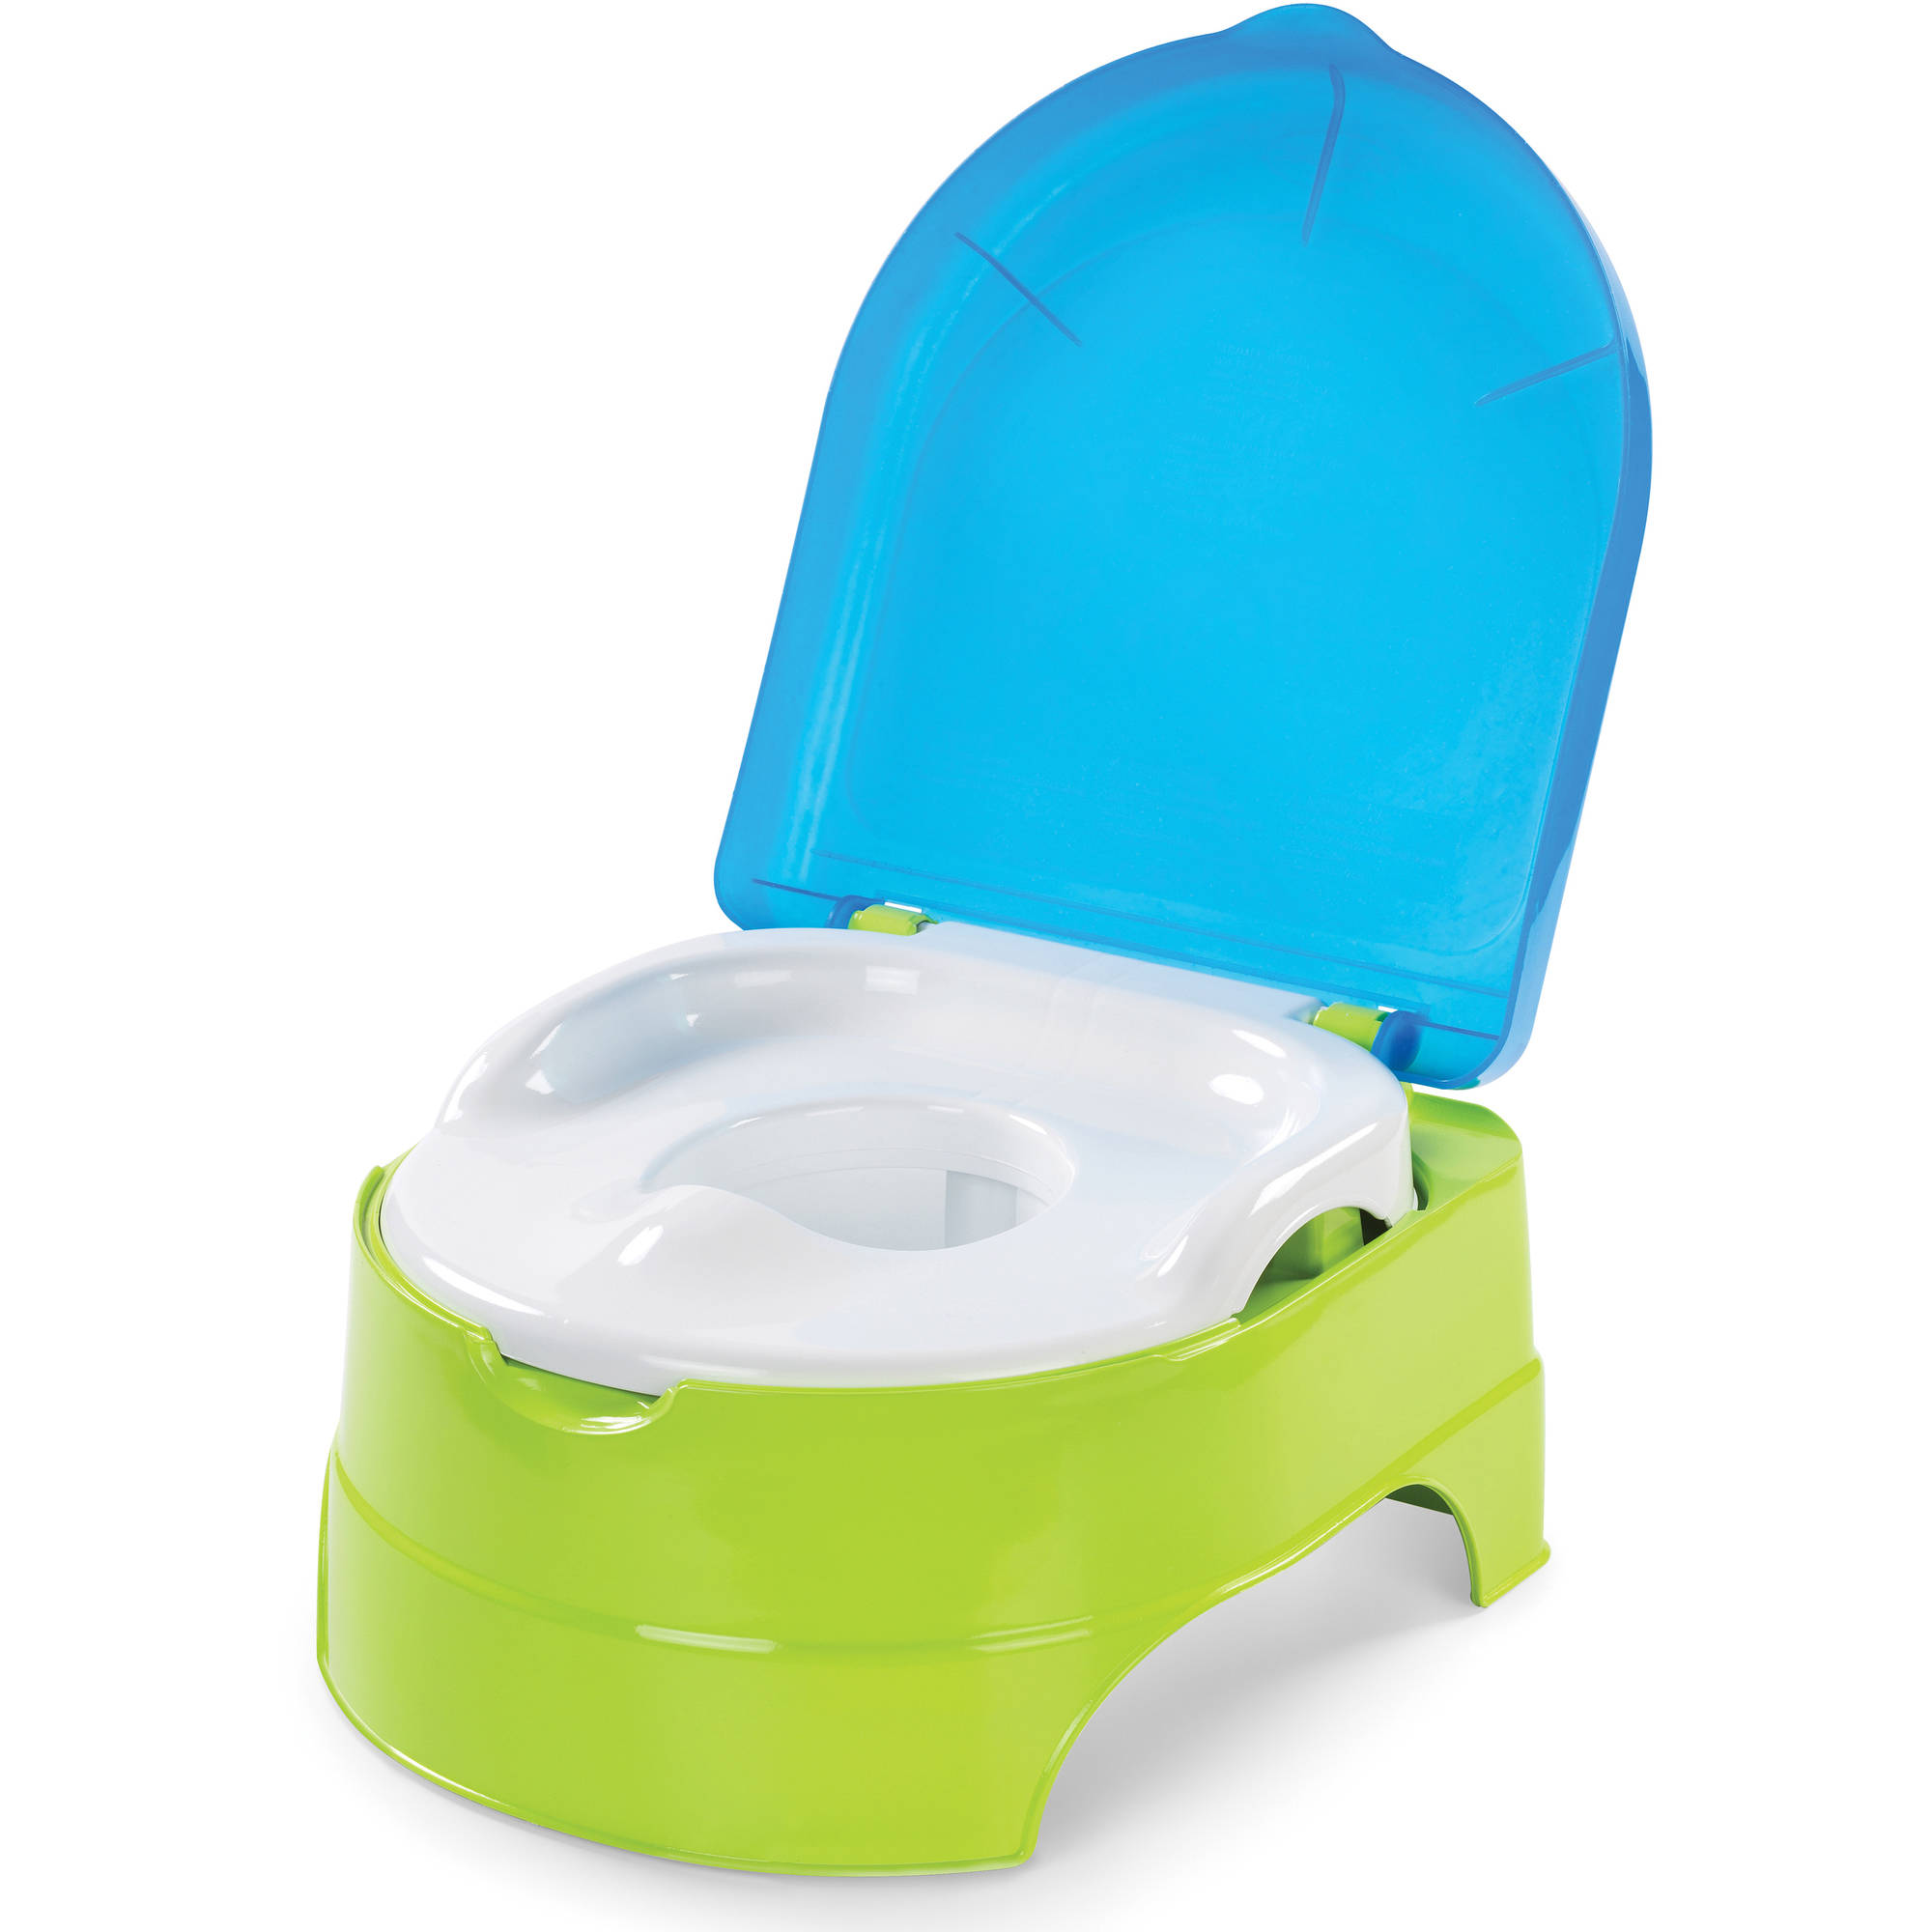 Dreambaby 3-in-1 Toilet Trainer - Walmart.com